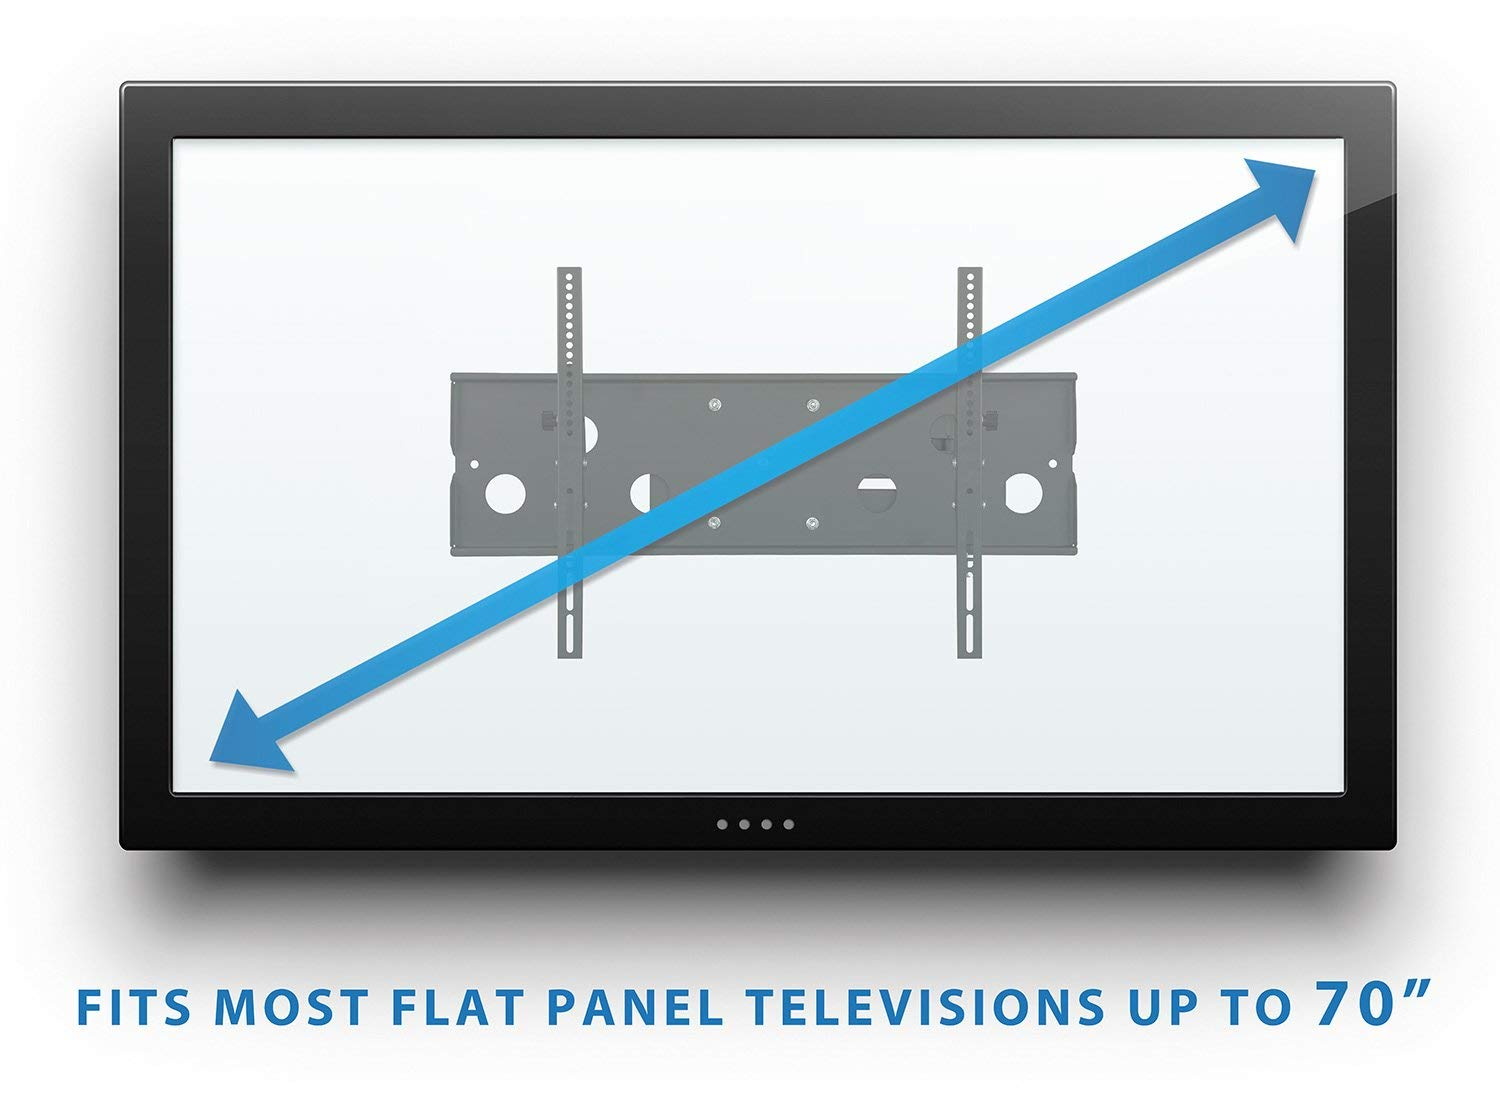 Mount-It! Long Arm TV Wall Mount With 26 Inch Extension, Swing Out Full Motion Design for Corner Installation, Fits 40 50, 55, 60, 65, 70 Inch Flat Screen TVs, 220 Pound Capacity by Everstone (Image #4)